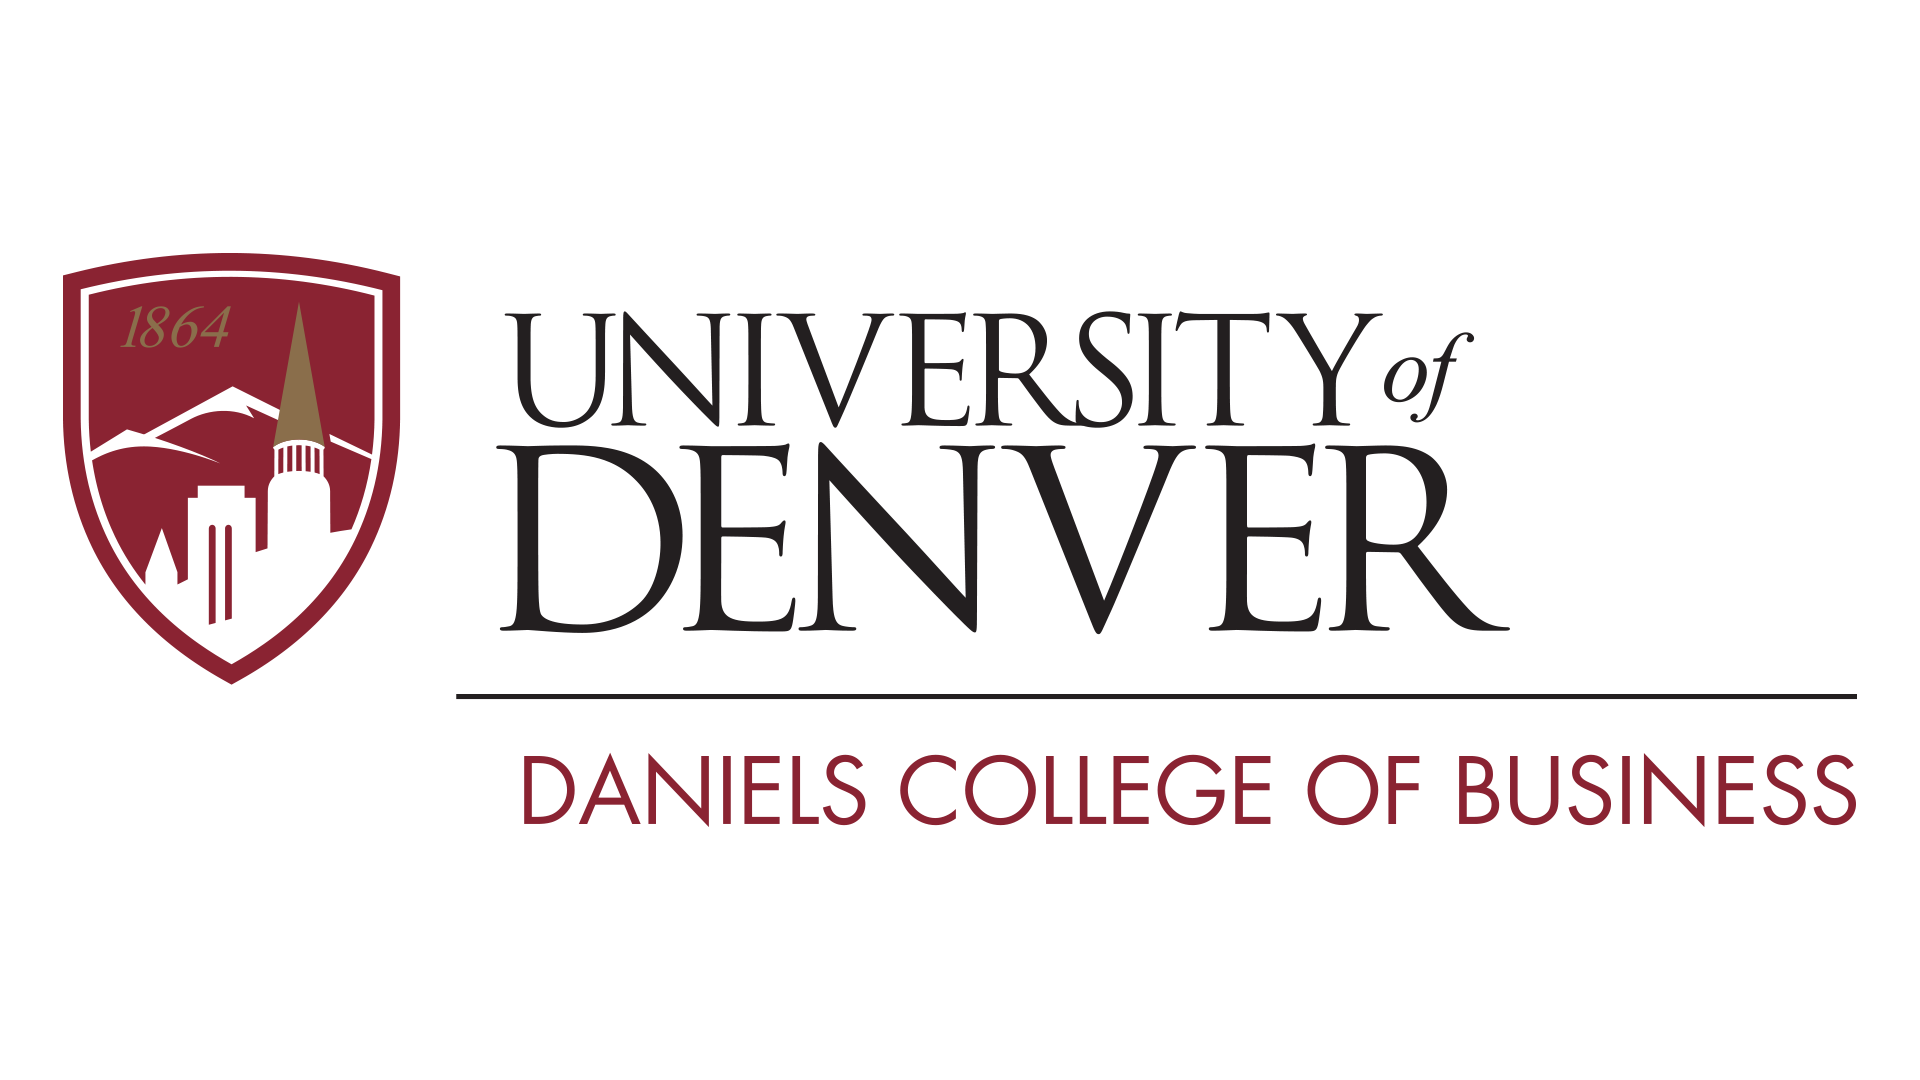 University of Denver Daniels College of Business